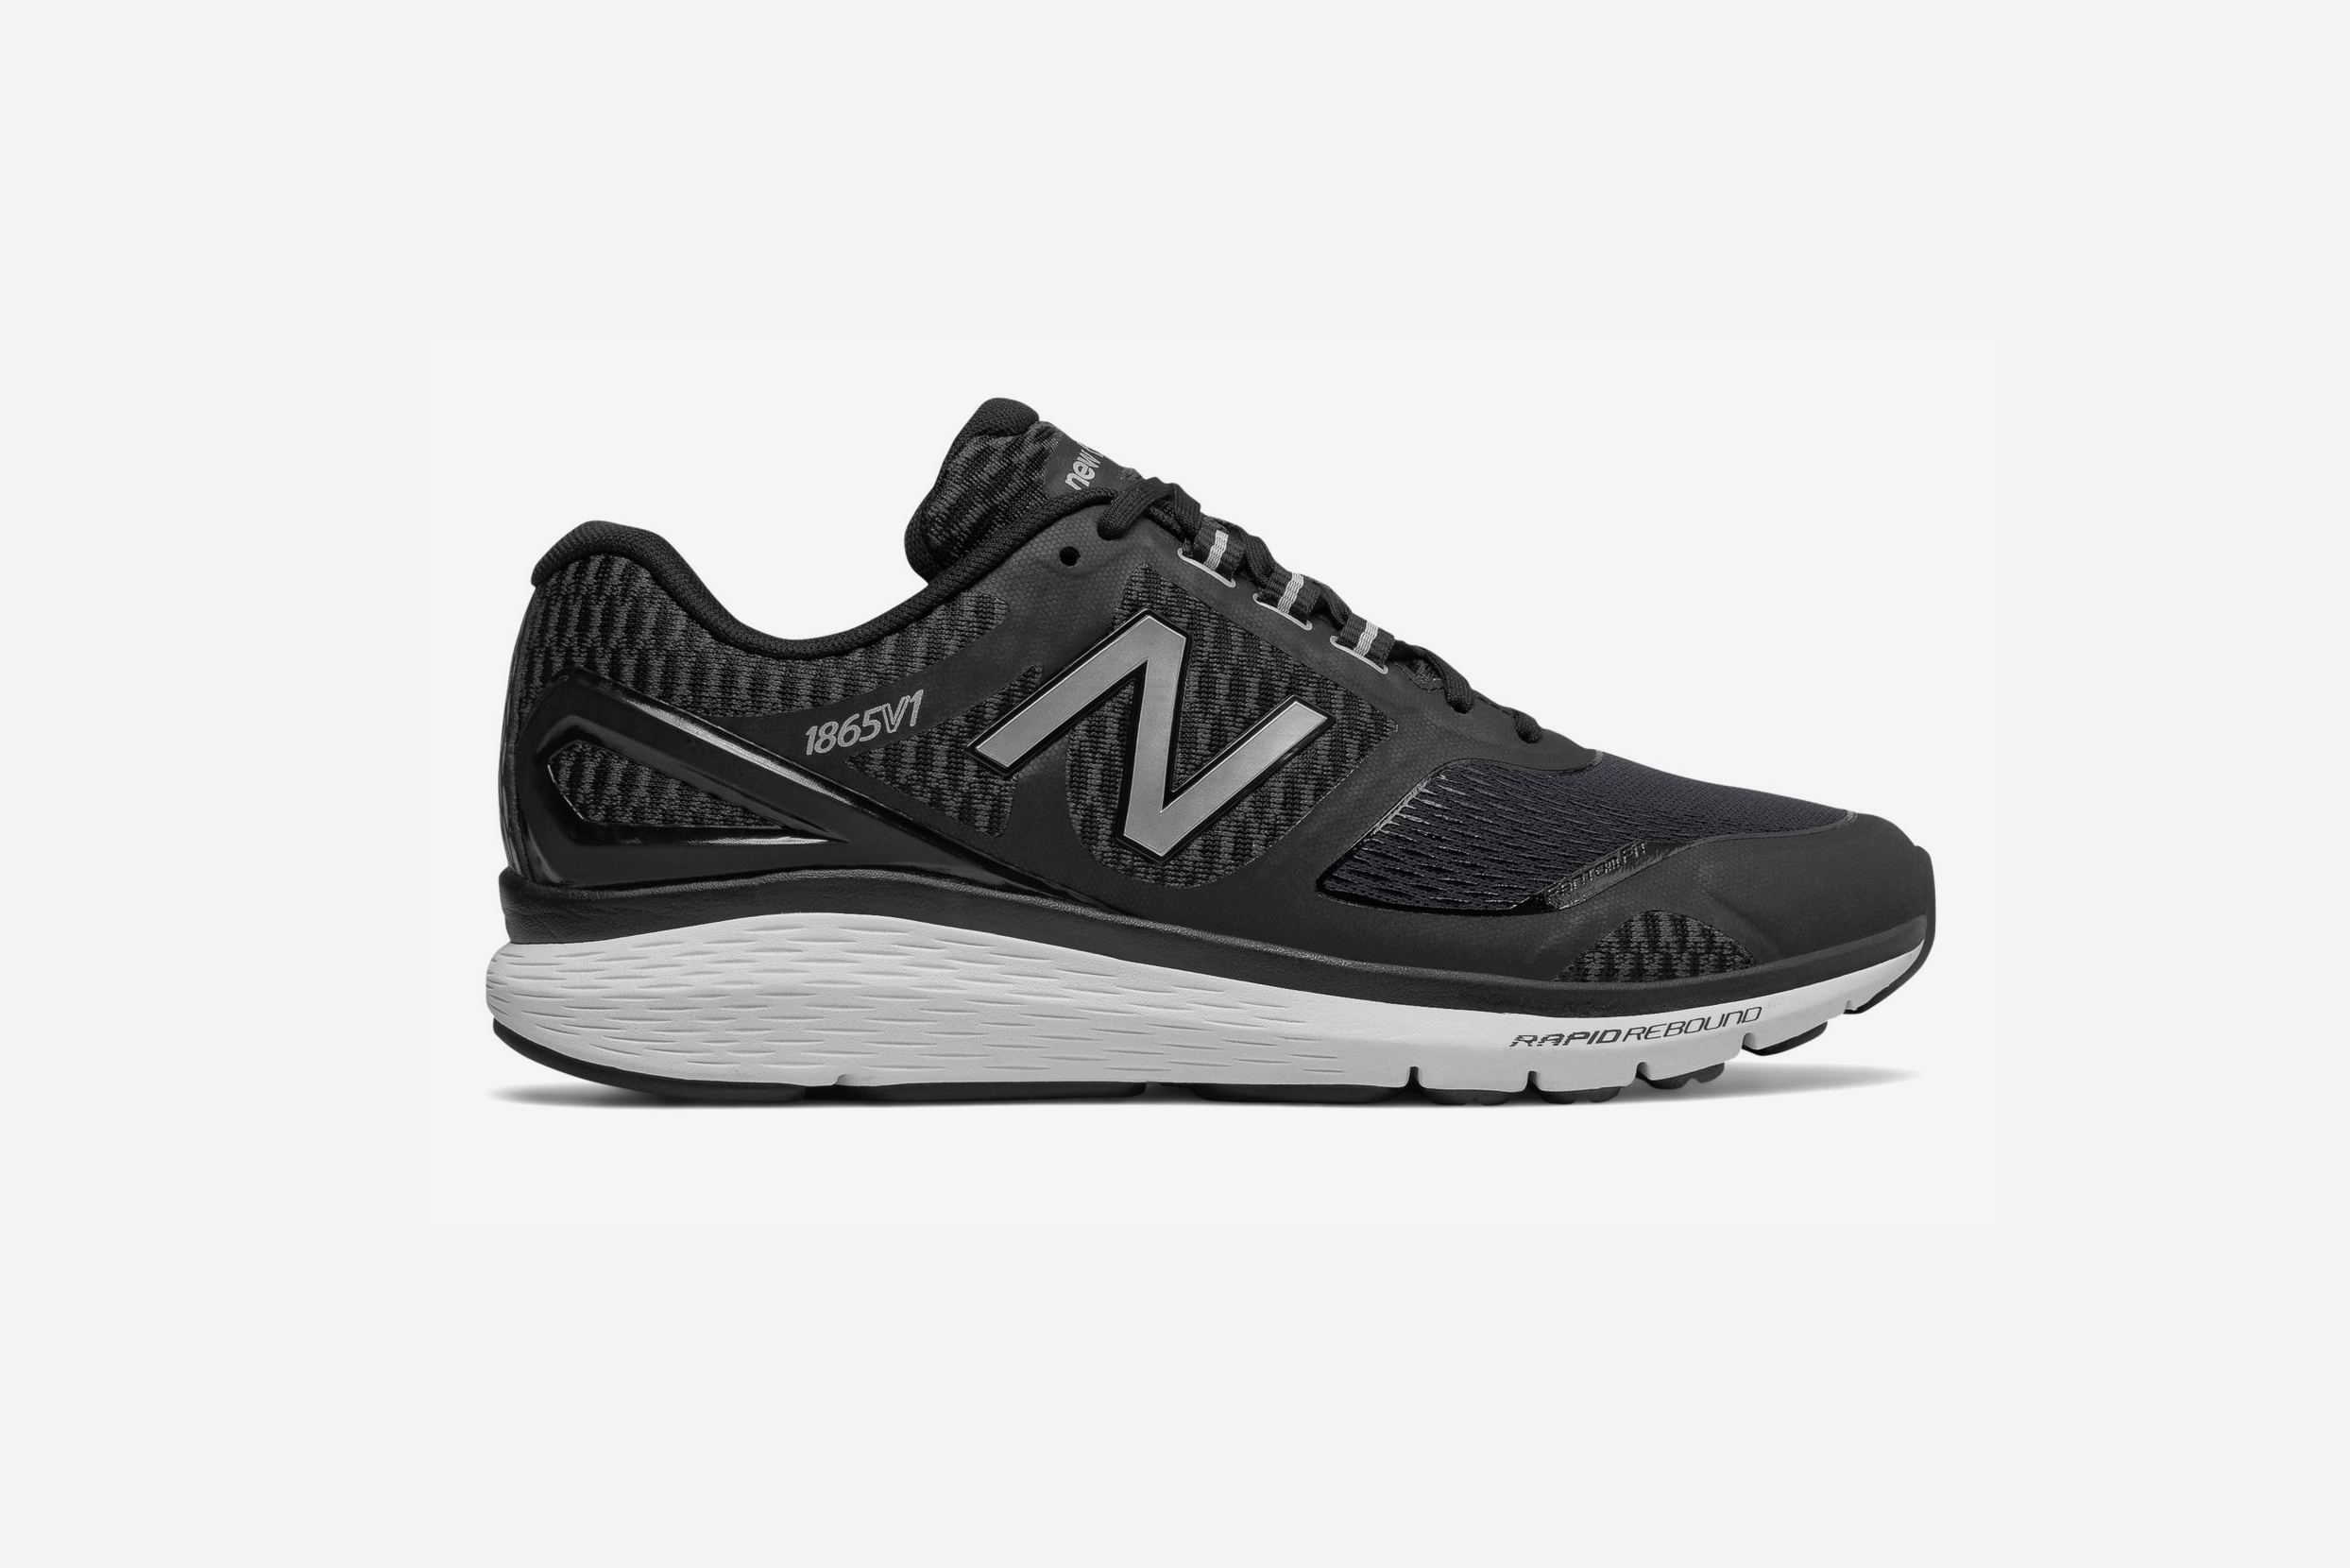 sélection premium 645a5 10cb9 New Balance USA Has Some Sweet Deals for Black Friday 2017